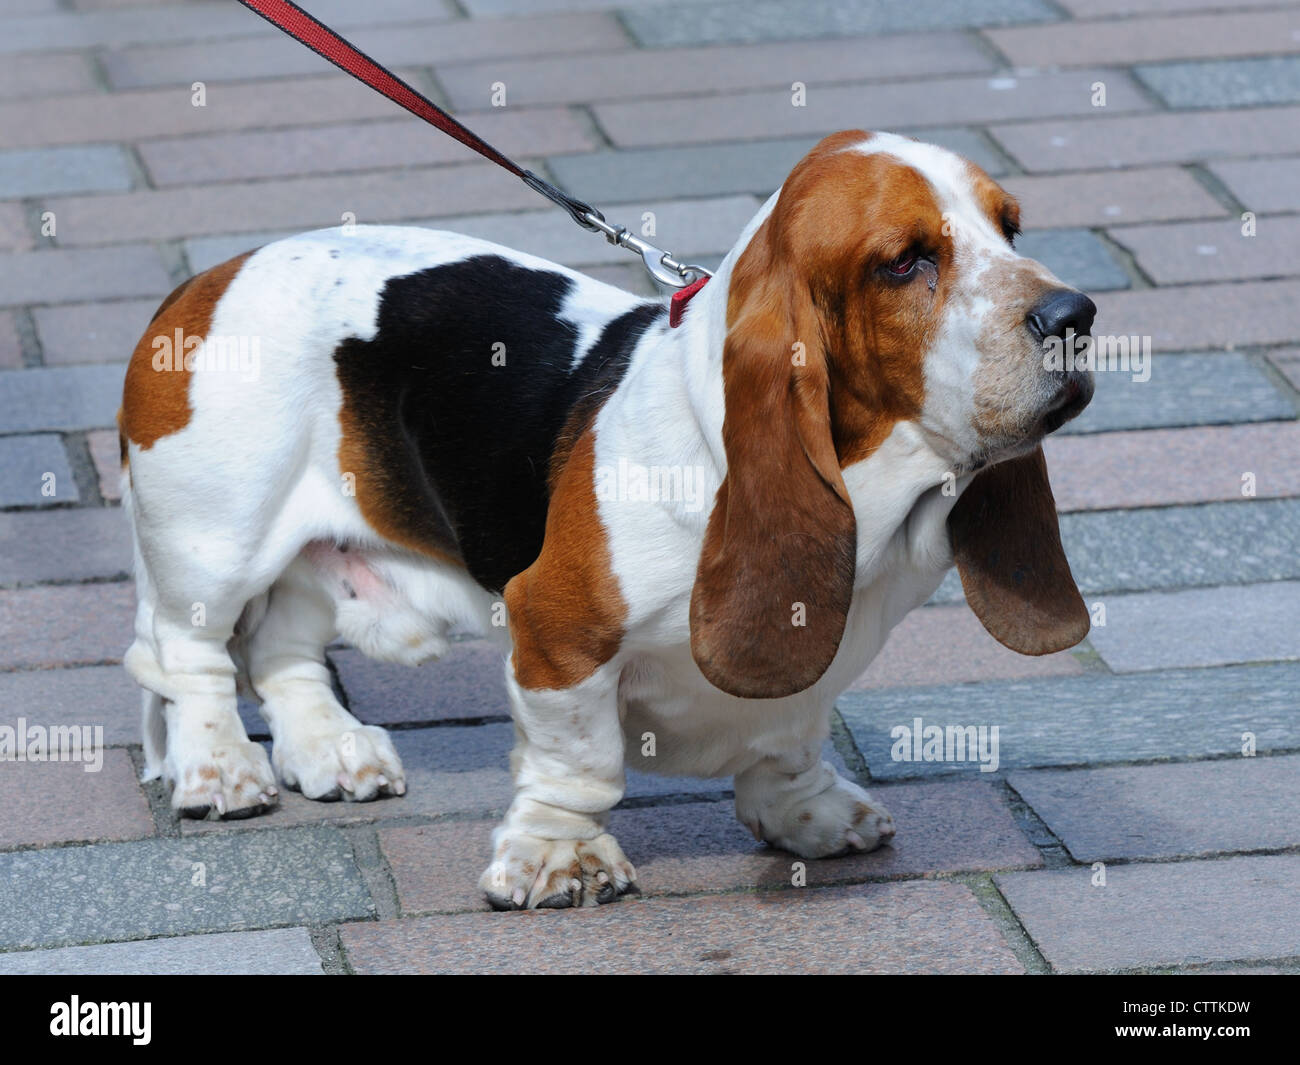 A Basset hound waits on his owner on modern cobble stones - Stock Image